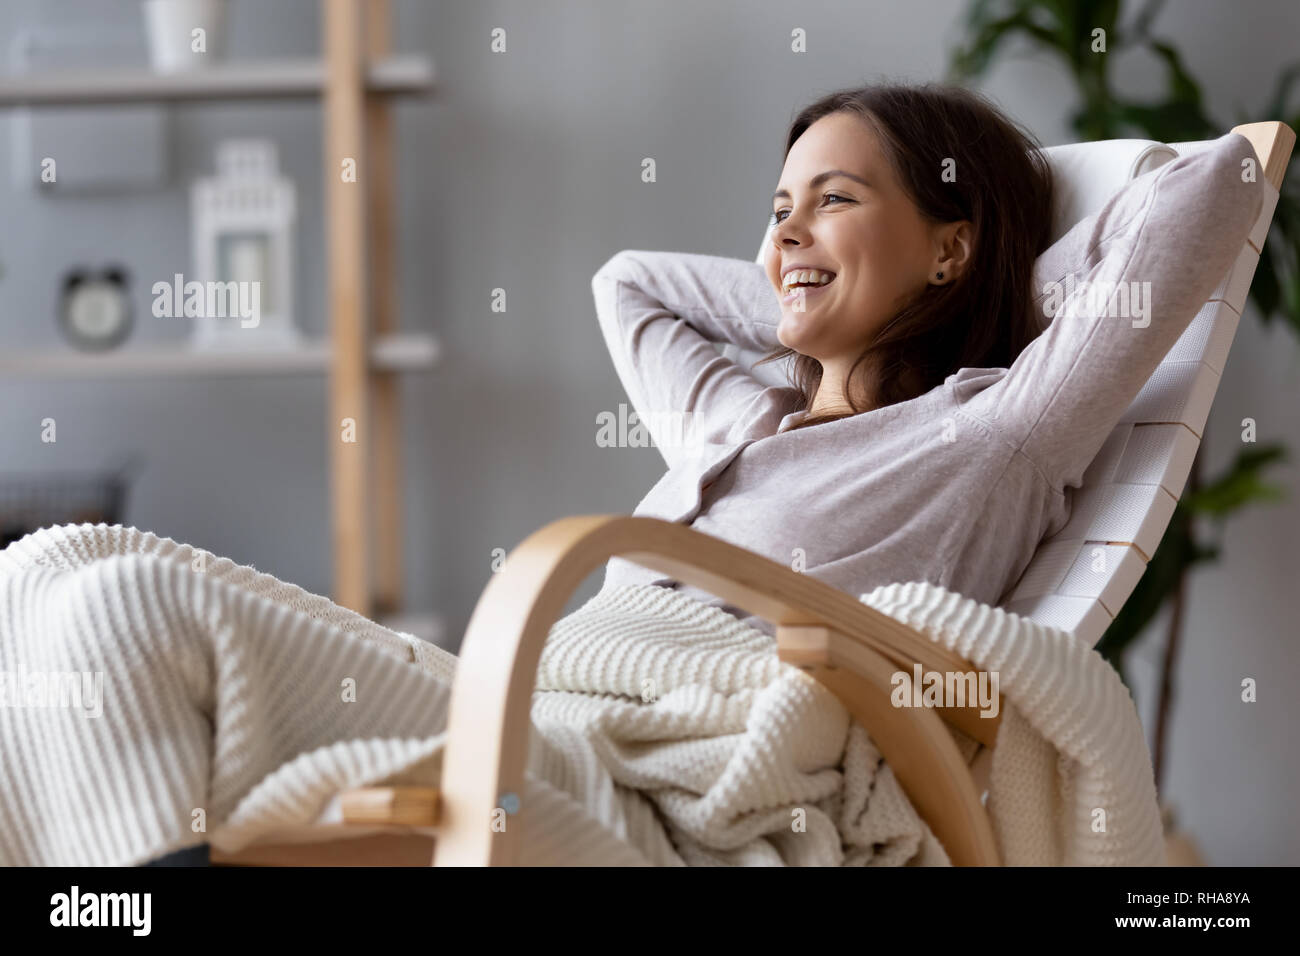 Happy millennial woman laughing resting on comfortable wooden rocking chair - Stock Image